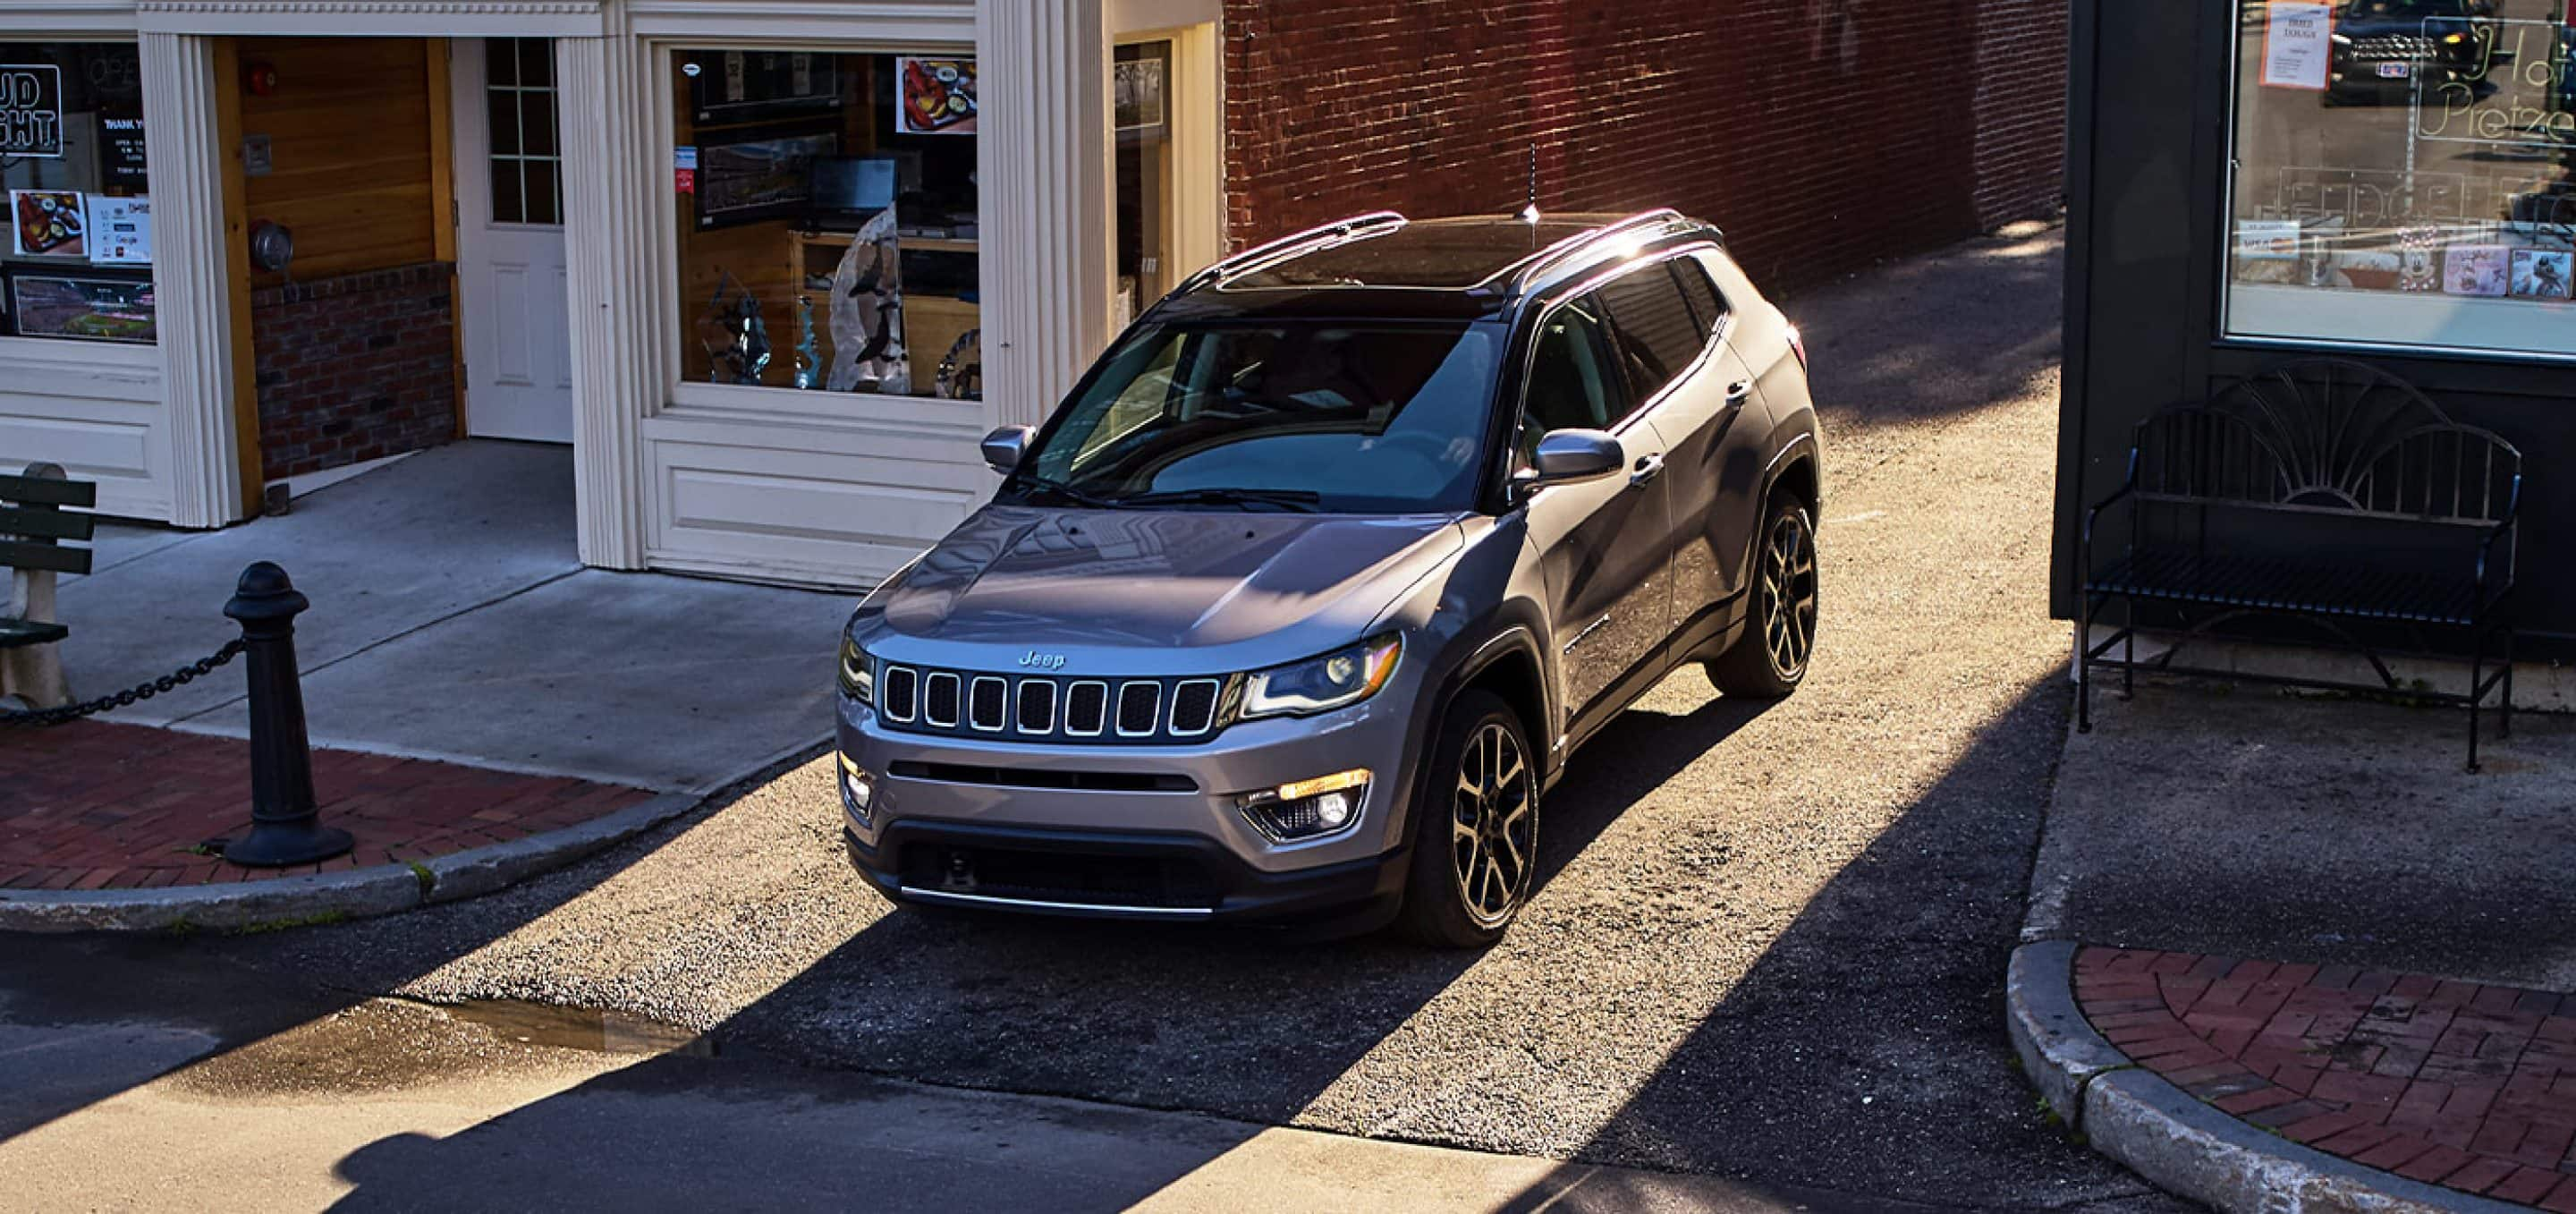 Trim Levels of the 2021 Jeep Compass